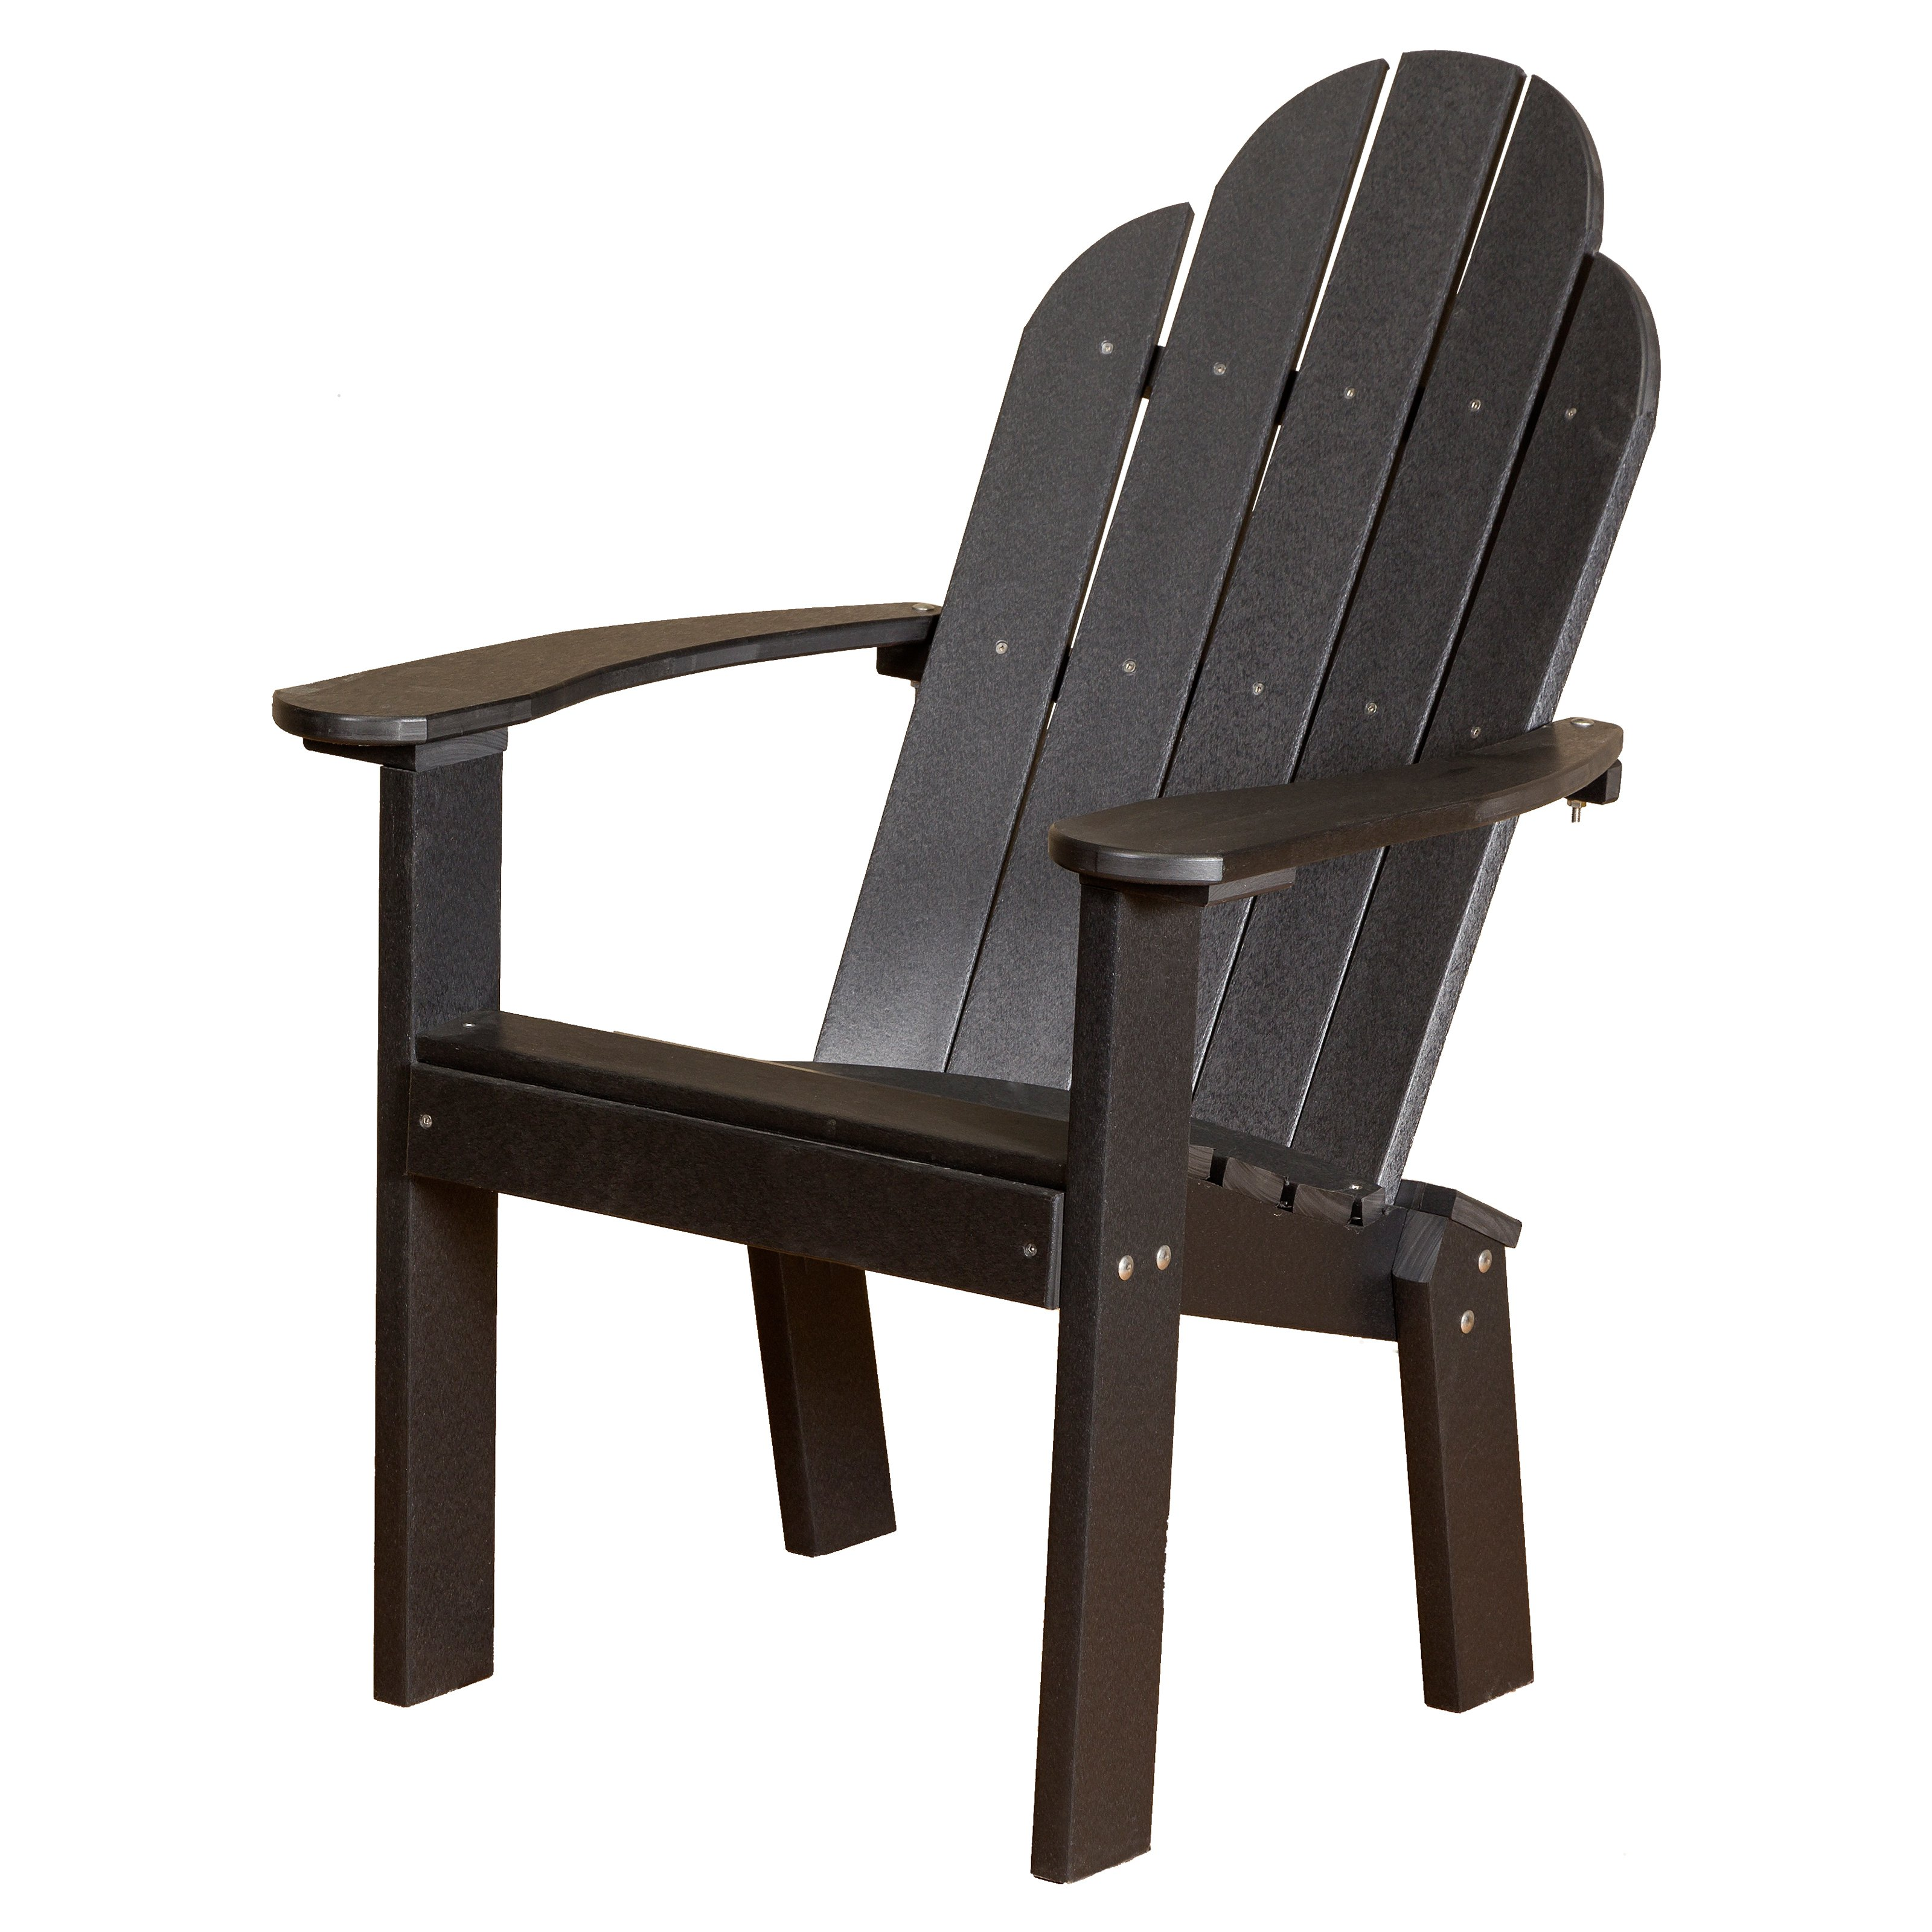 Little Cottage Classic Recycled Plastic Deck Chair